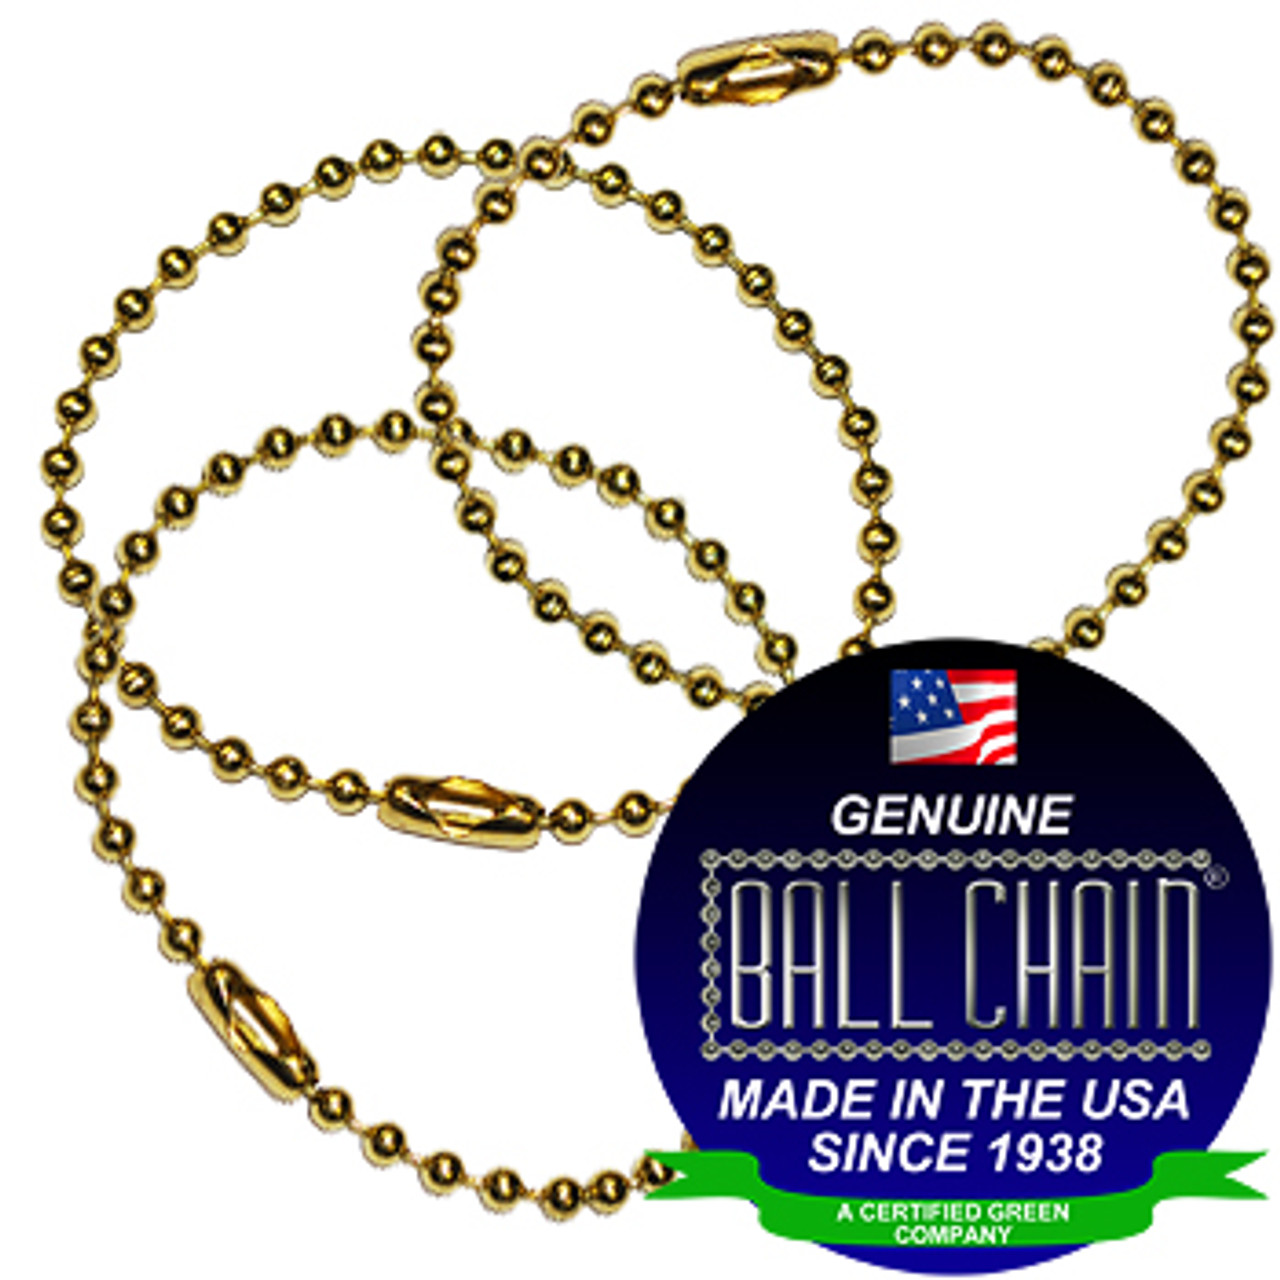 #3 Brass Plated Steel Key Chains - 6 Inch Length